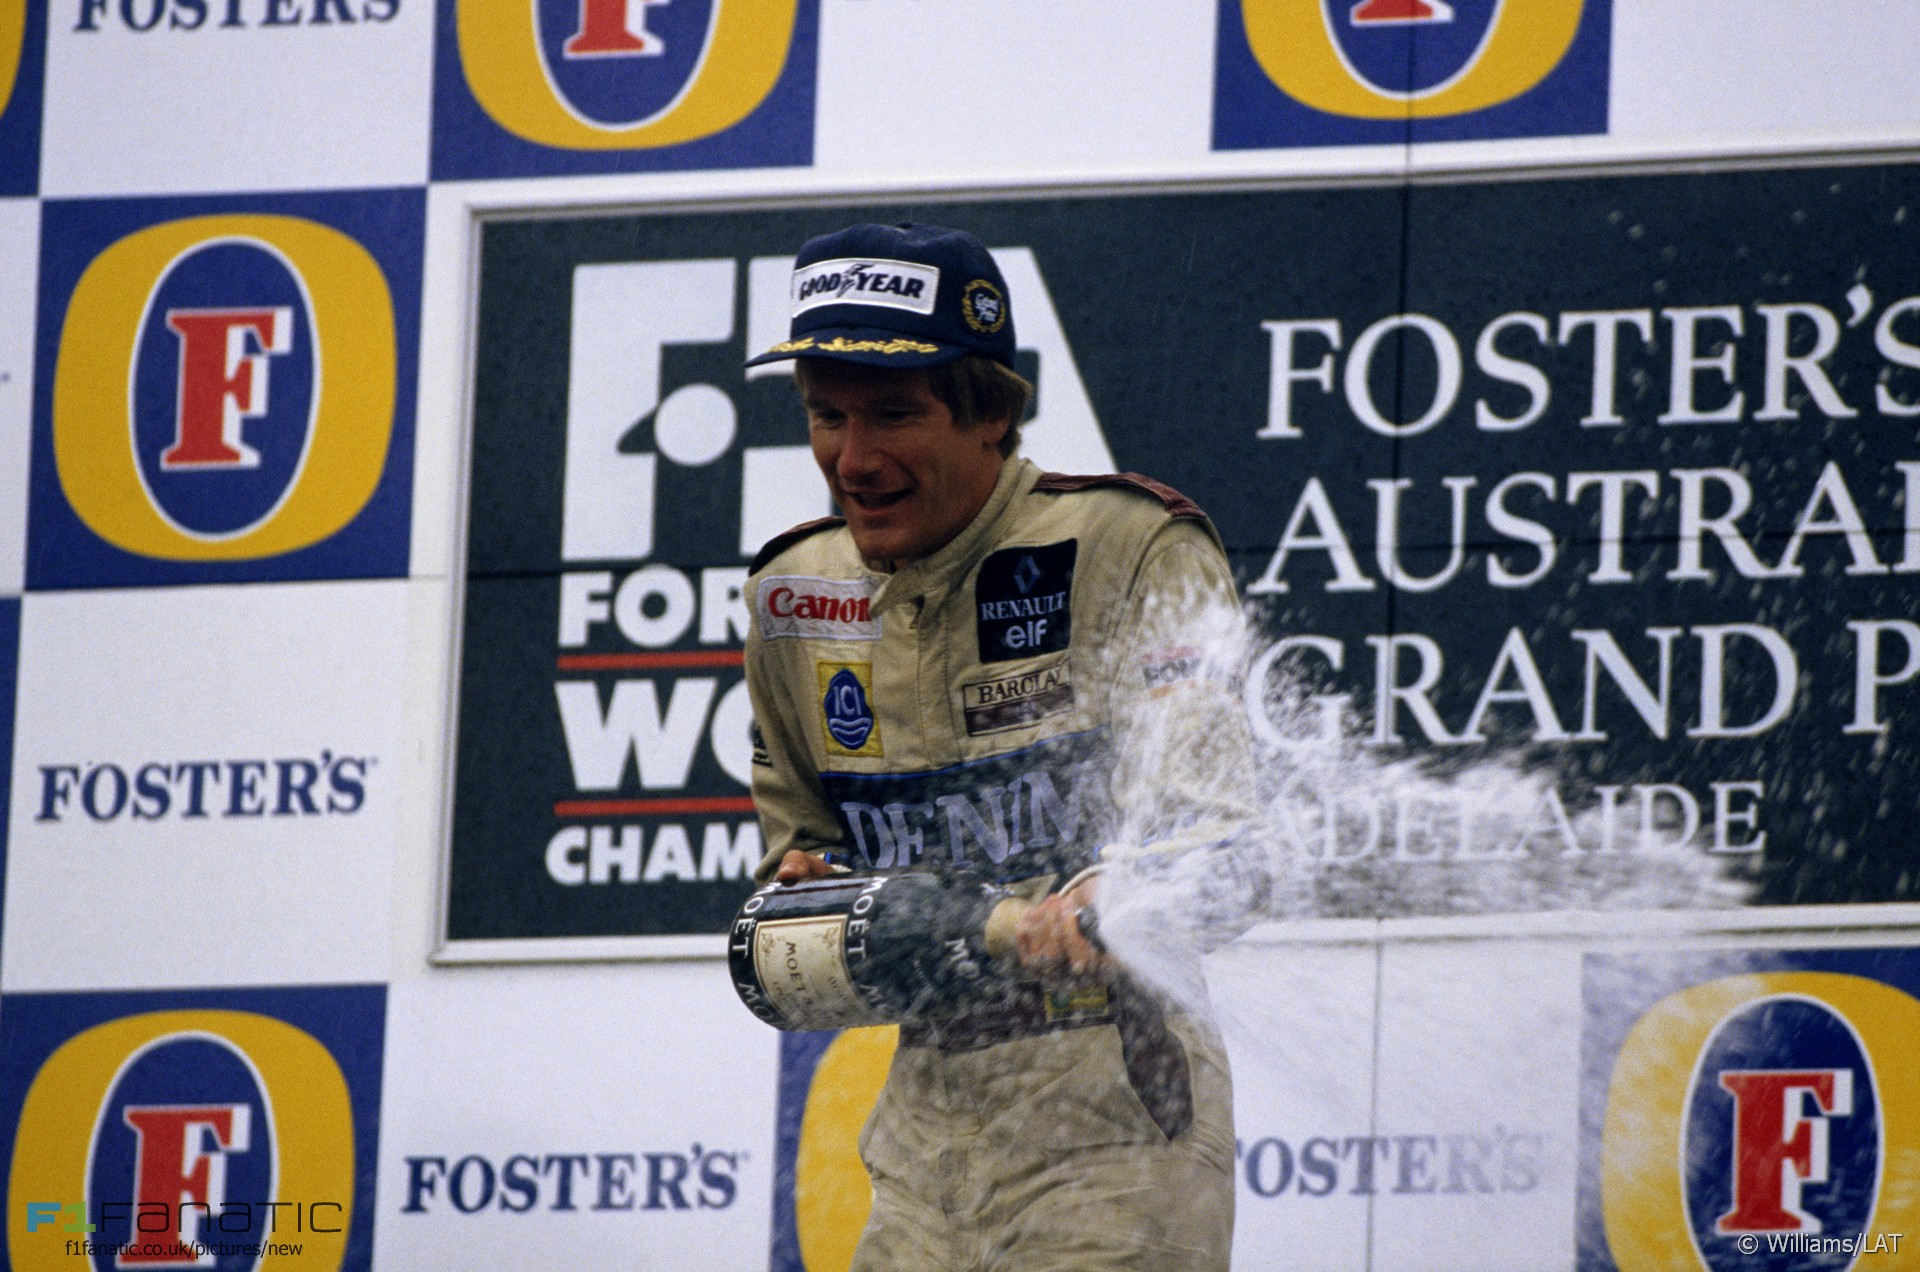 Thierry Boutsen, Williams, Adelaide, 1989